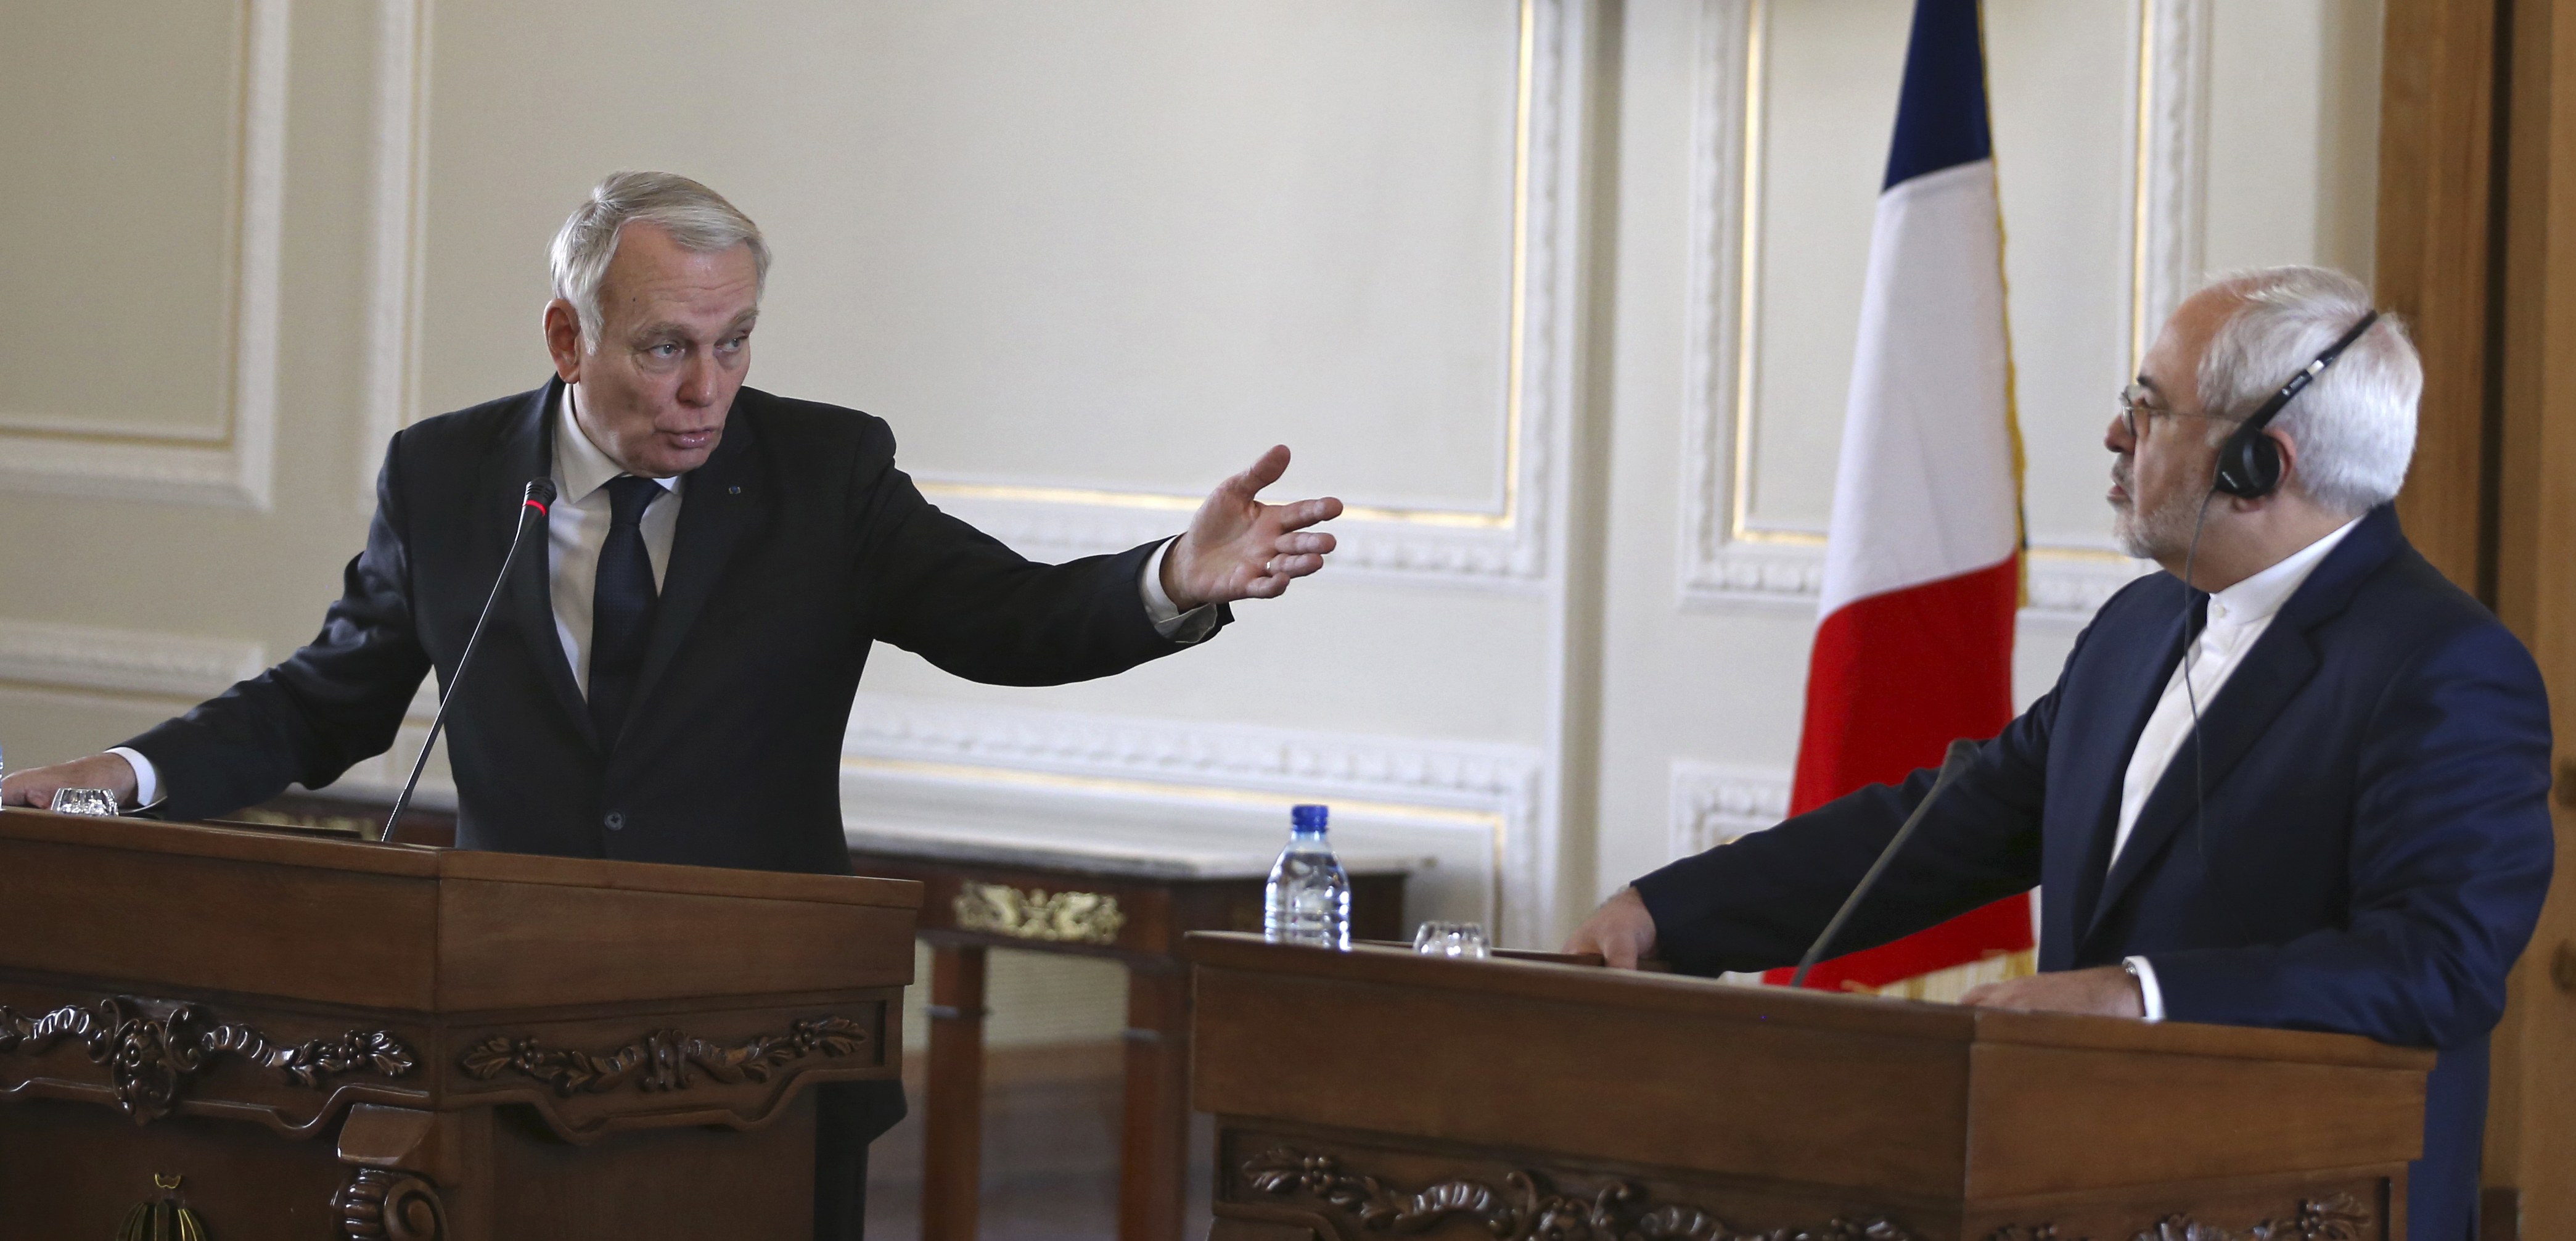 French Foreign Minister Jean-Marc Ayrault (L) speaks during a joint press conference with his Iranian counterpart Mohammad Javad Zarif in Tehran, Iran on Jan. 31, 2017. (AP Photo/Vahid Salemi)